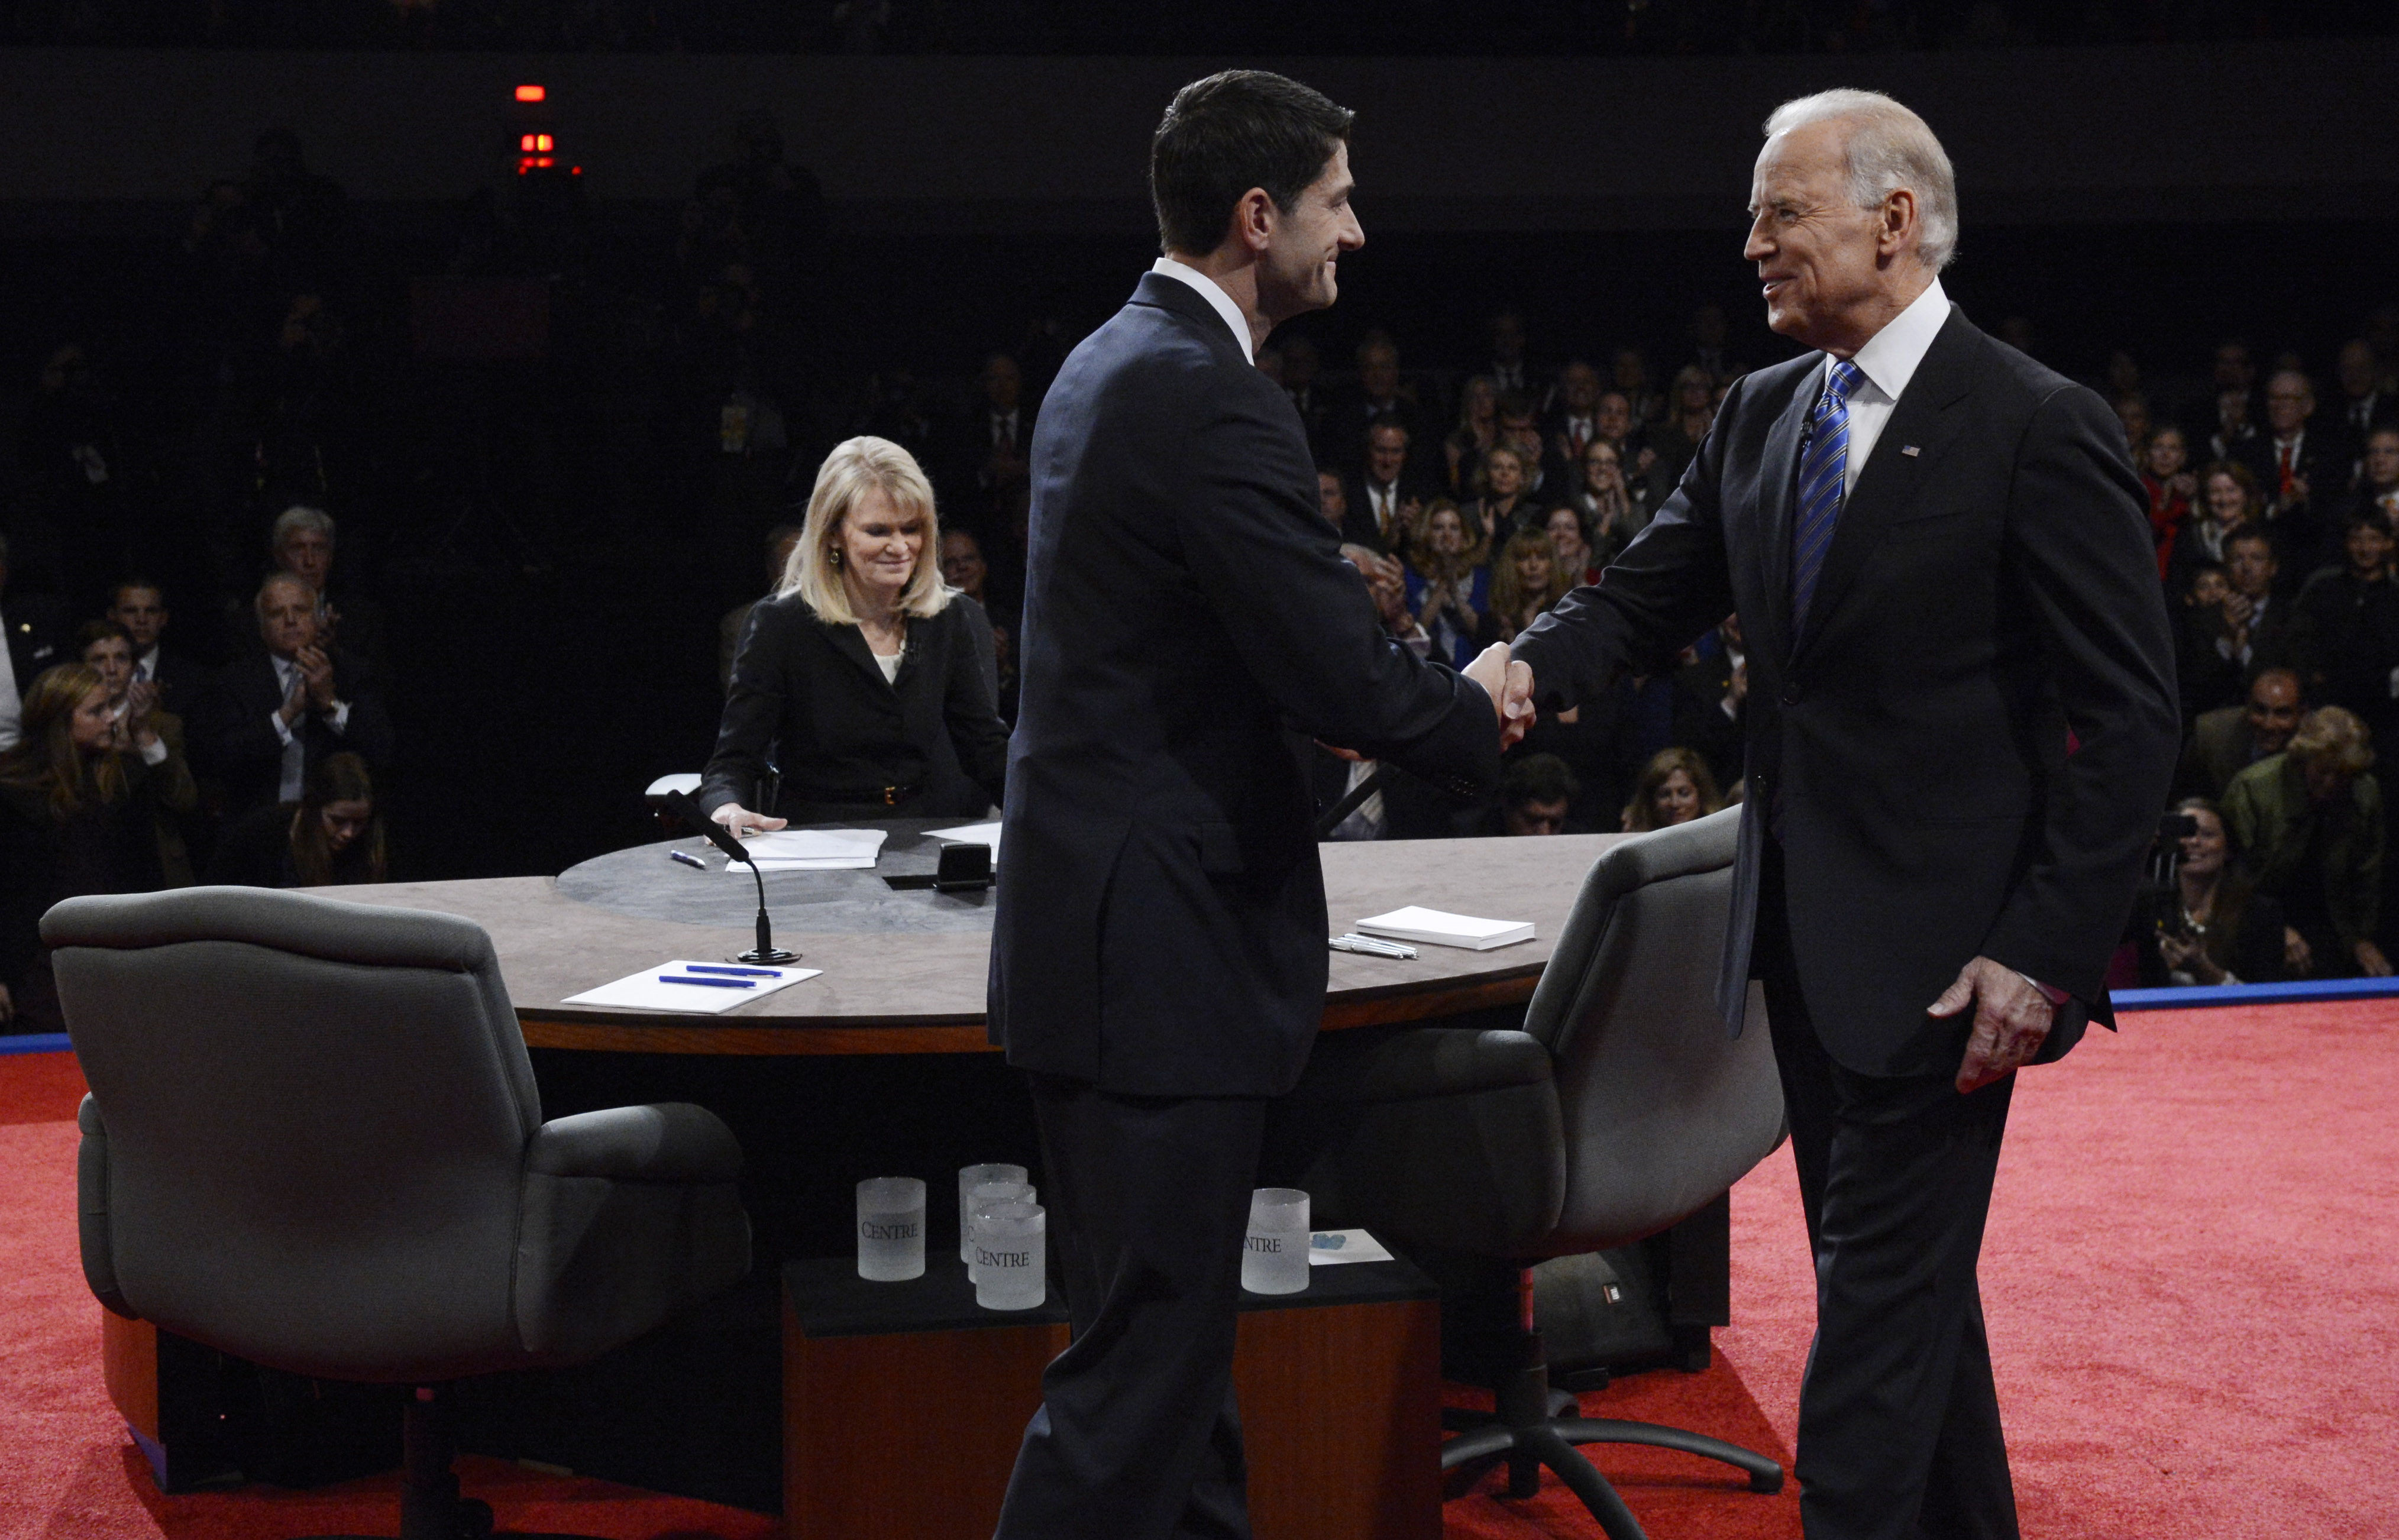 DANVILLE, KY - OCTOBER 11: Republican vice presidential candidate U.S. Rep. Paul Ryan (R-WI) (L) shakes hands with U.S. Vice President Joe Biden before the vice presidential debate at Centre College on October 11, 2012 in Danville, Kentucky. This is the second of four debates during the presidential election season and the only debate between the vice presidential candidates before the closely-contested election November 6. (Photo by Michael Reynolds-Pool/Getty Images)